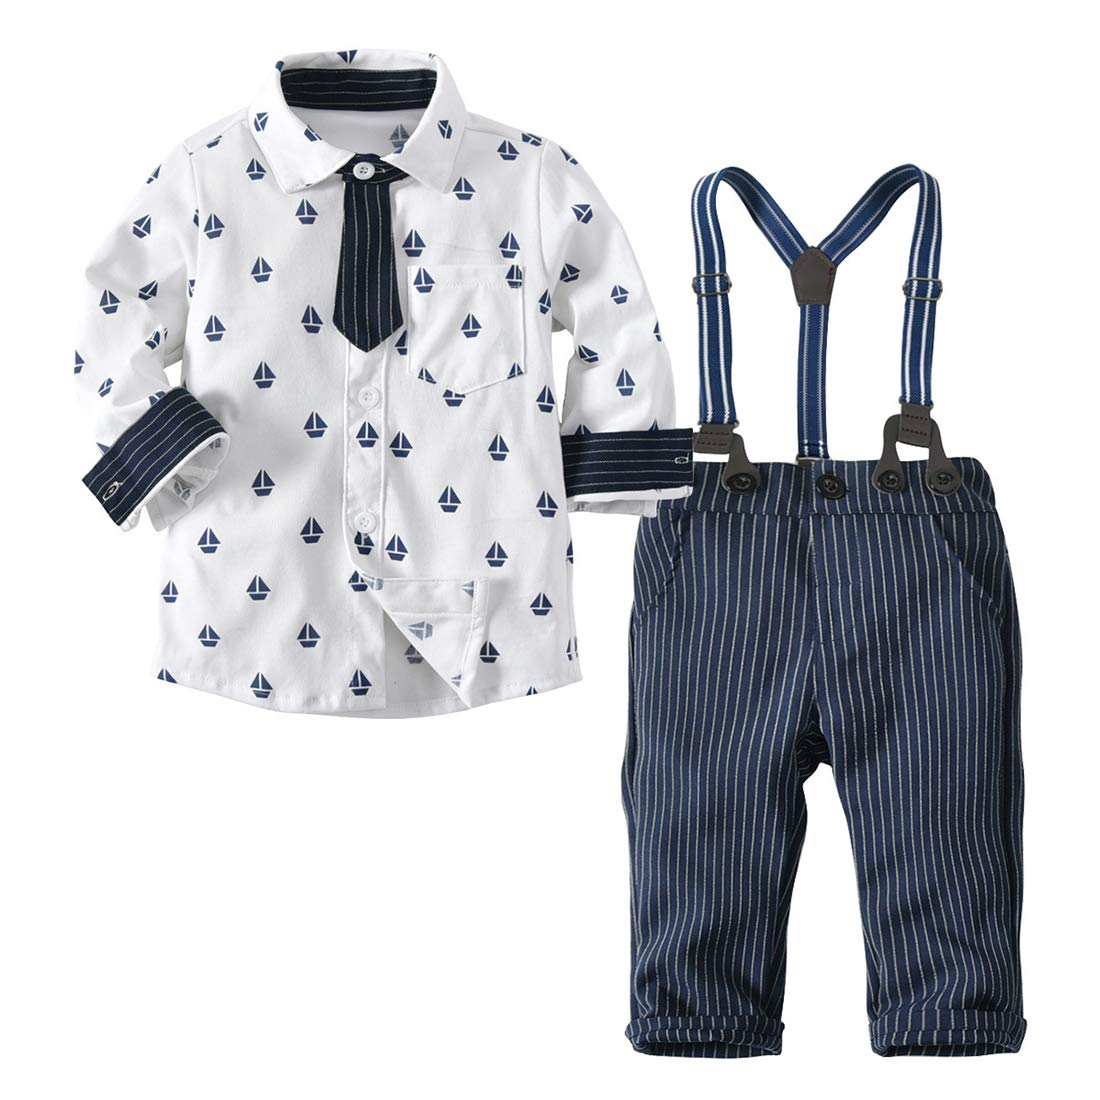 Mornyray 3PCS Outfit Set Toddlers Baby Boys Gentleman Shirt Striped Pants with Straps